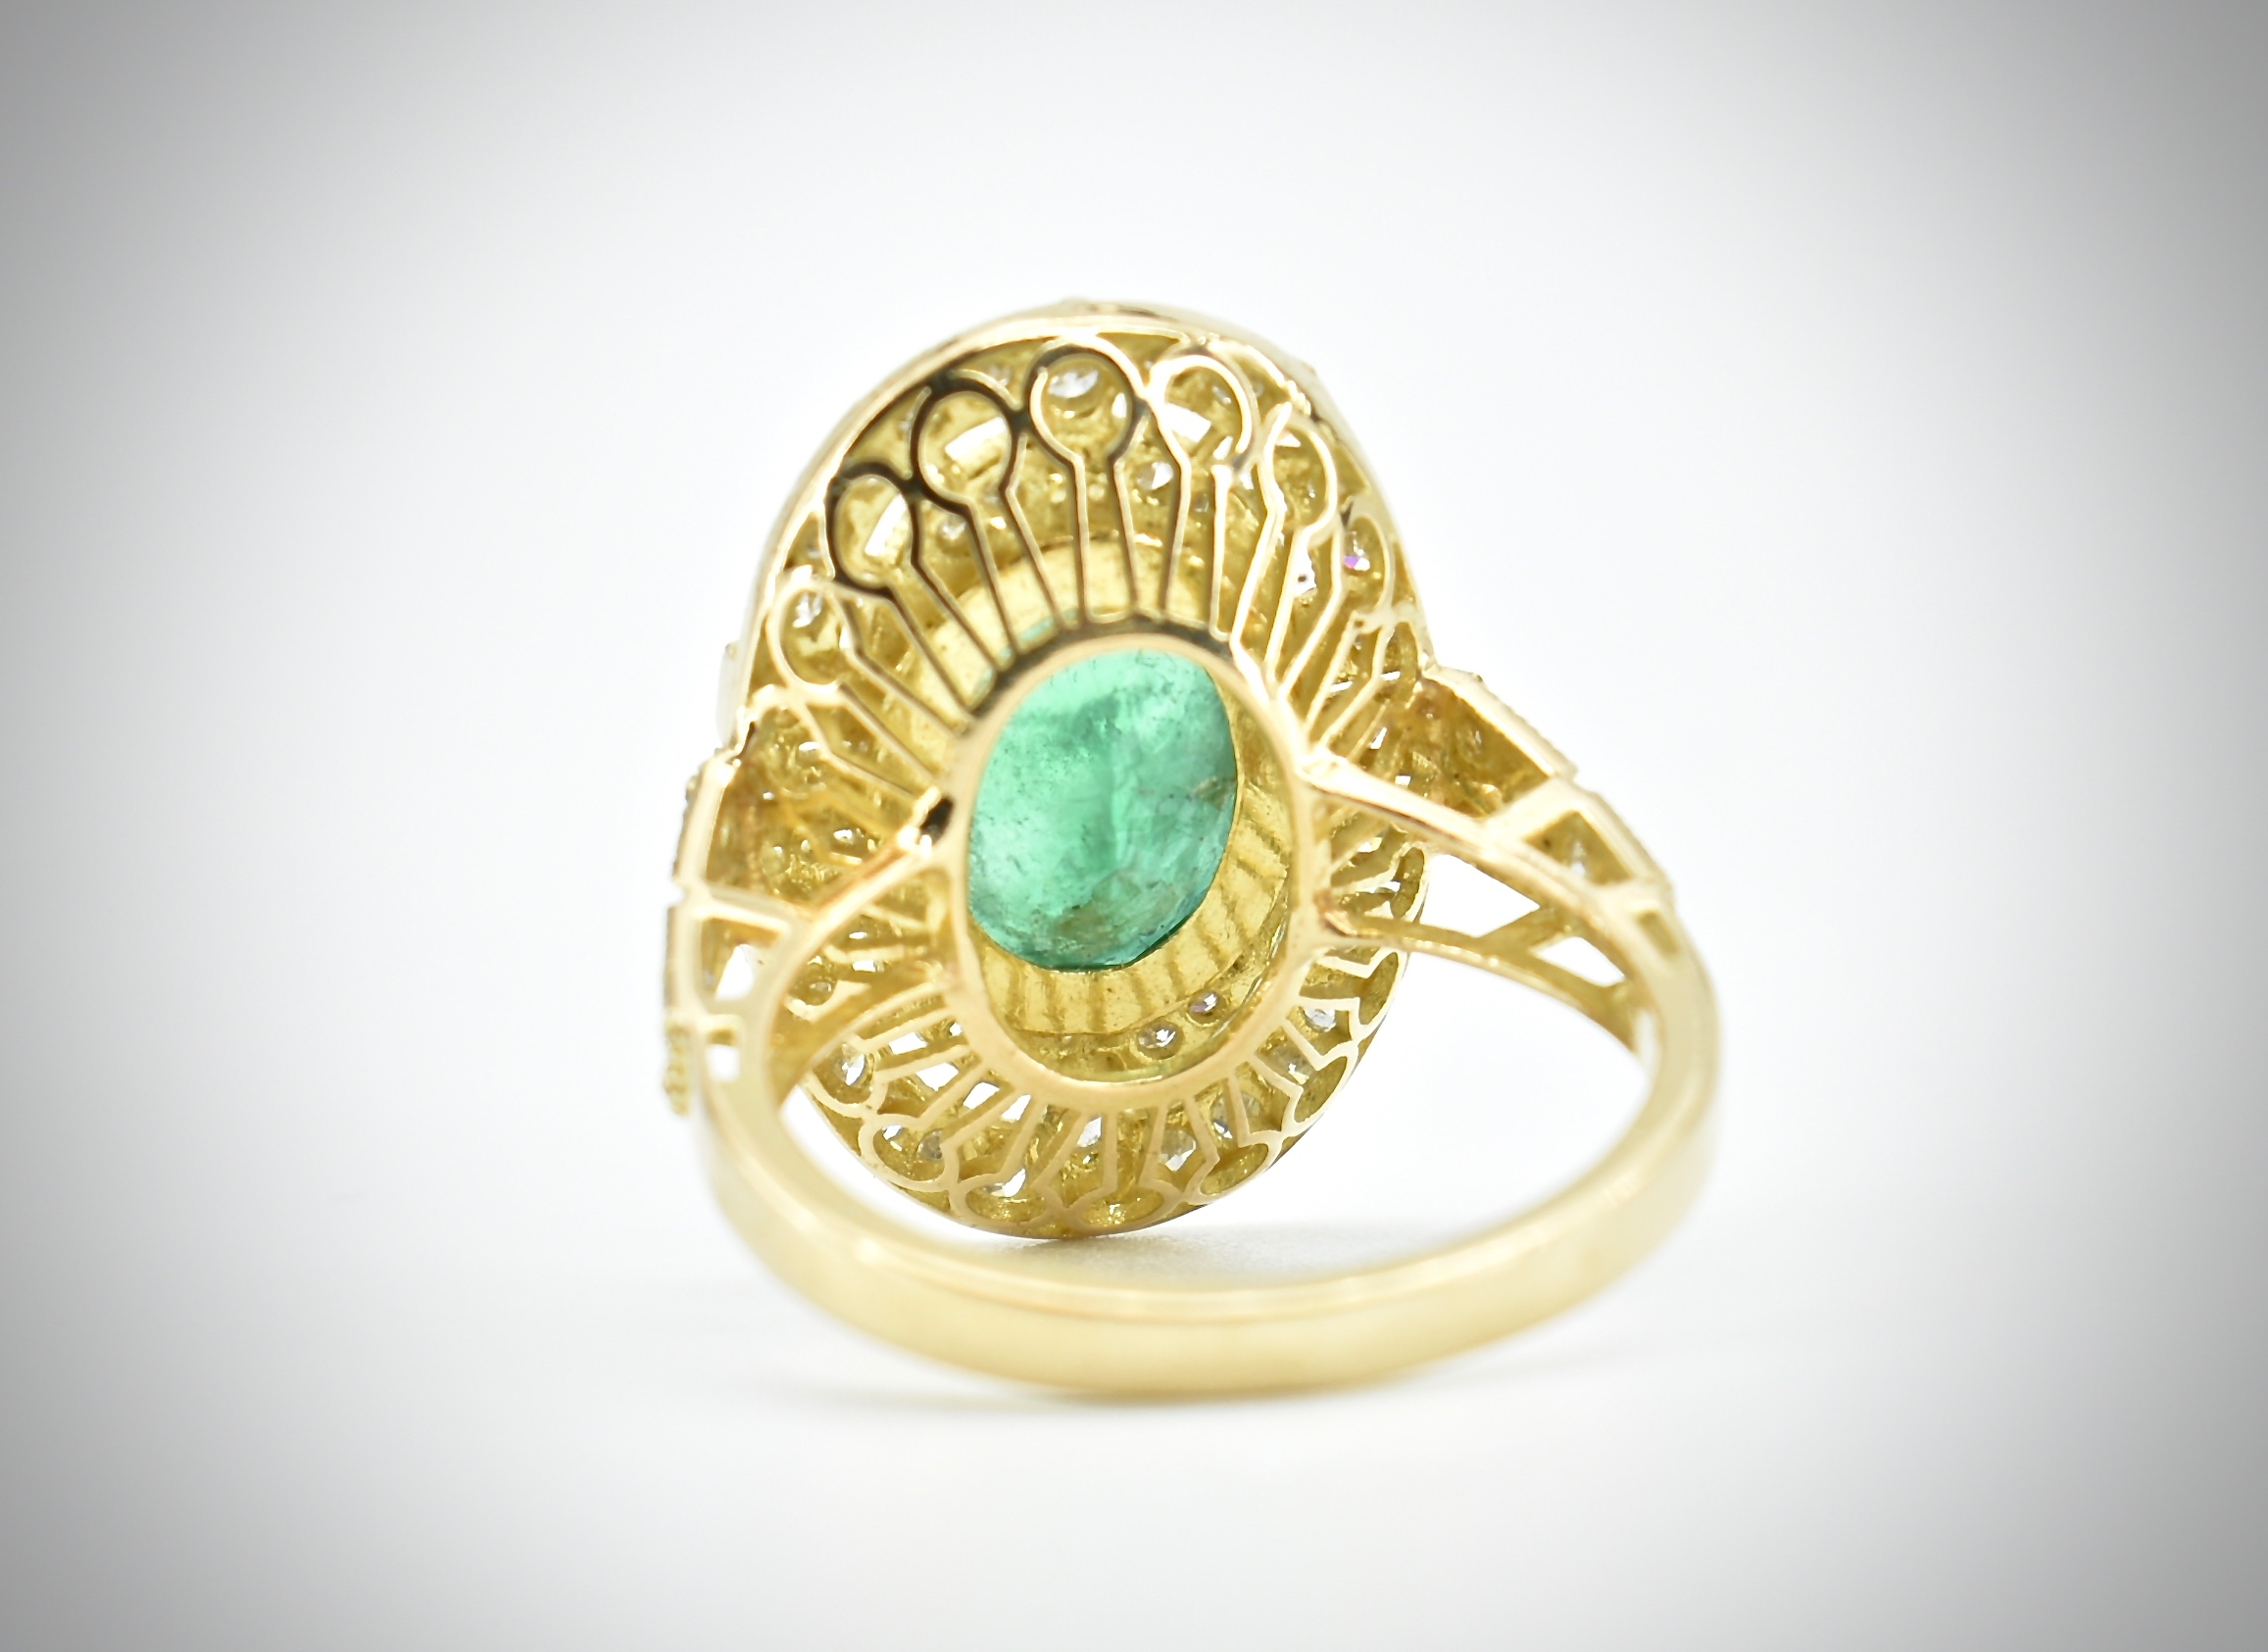 AN 18CT GOLD EMERALD & DIAMOND RING - Image 3 of 5